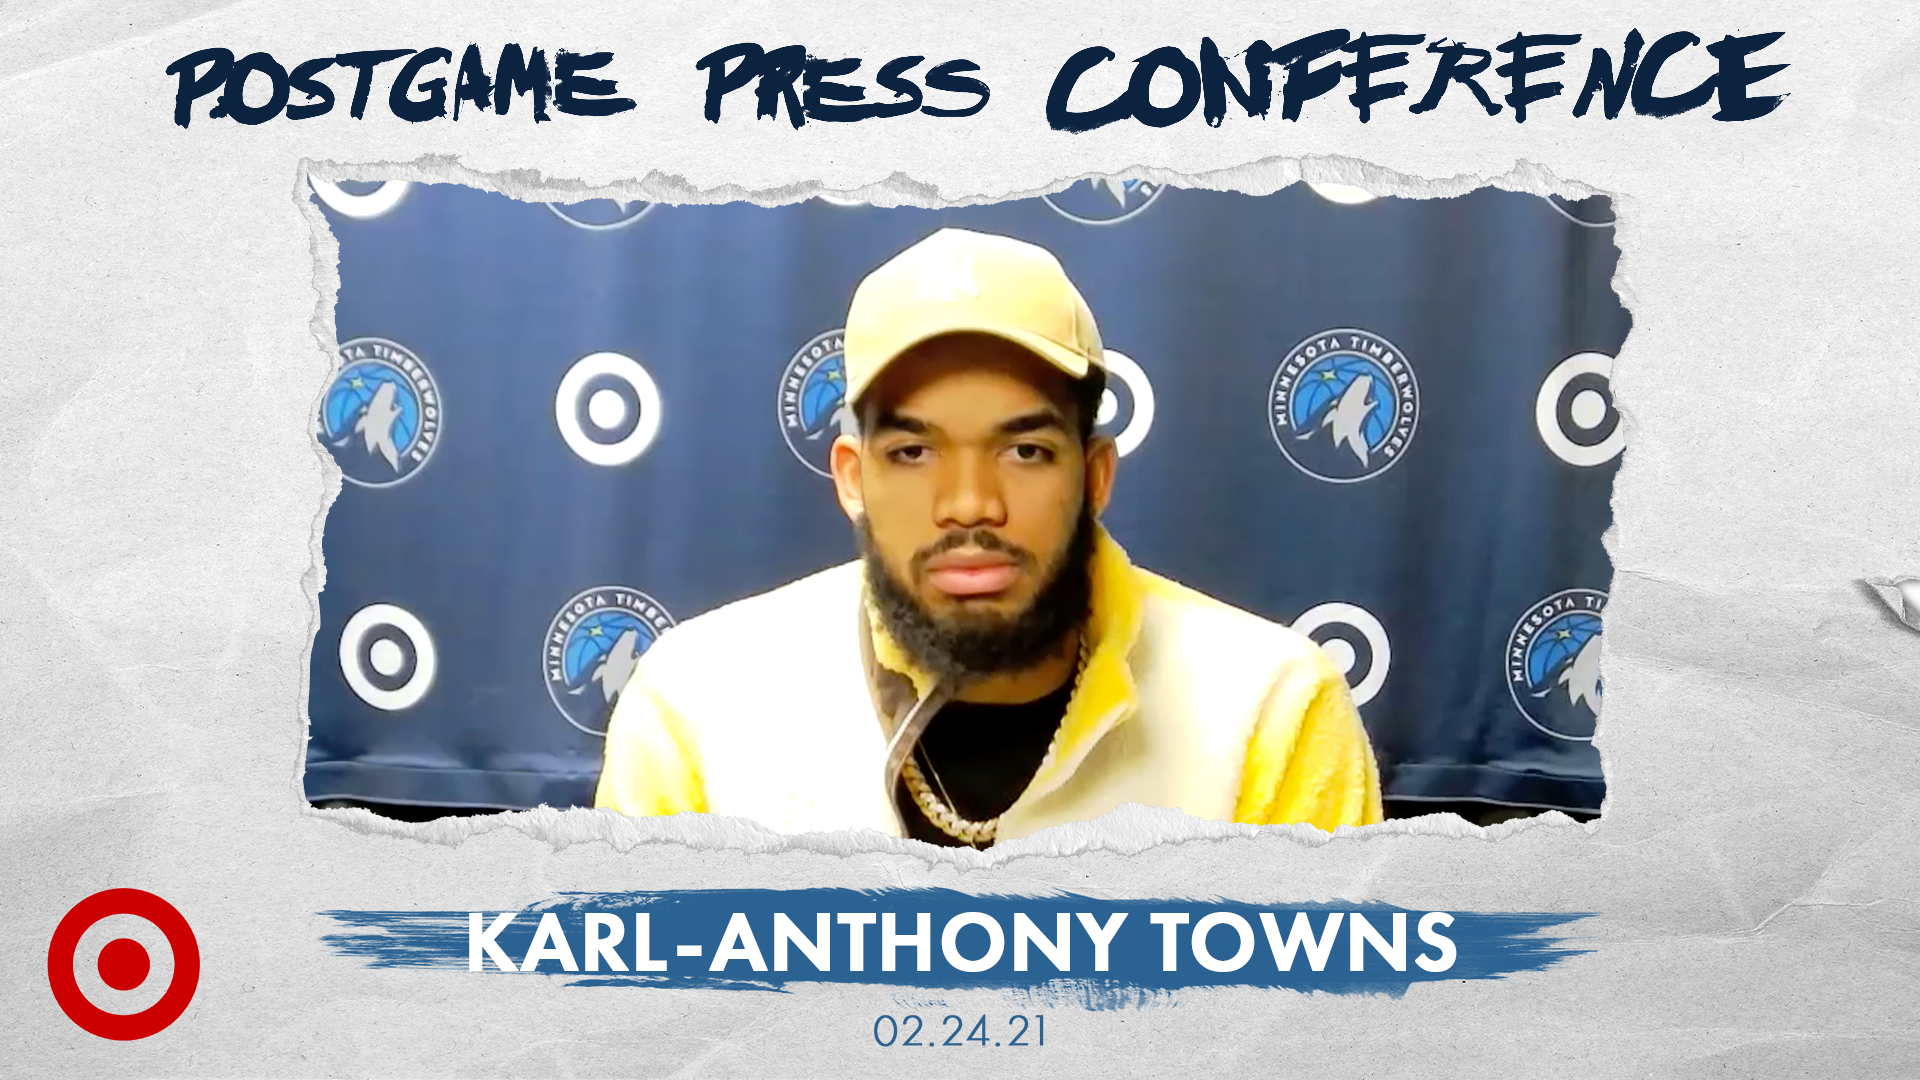 Karl-Anthony Towns Postgame Press Conference - February 24, 2021